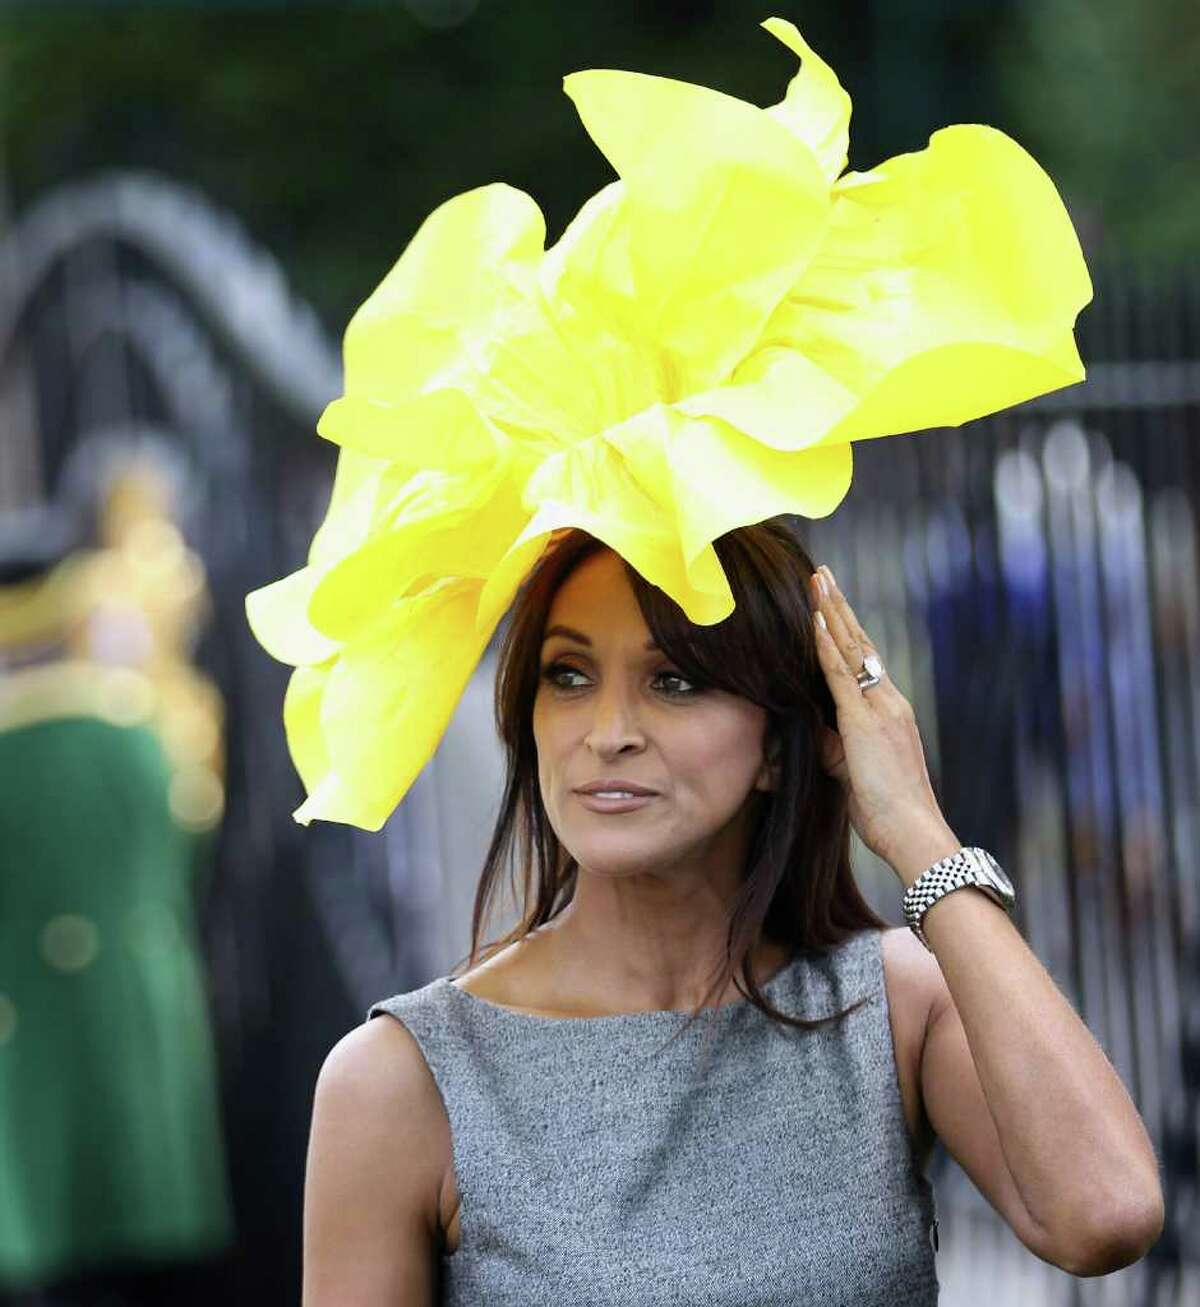 ASCOT, ENGLAND - JUNE 14: A lady in a floral hat is photographed as she arrives for the opening day of Royal Ascot at Ascot Racecourse on June 14, 2011 in Ascot, United Kingdom. (Photo by Chris Jackson/Getty Images)